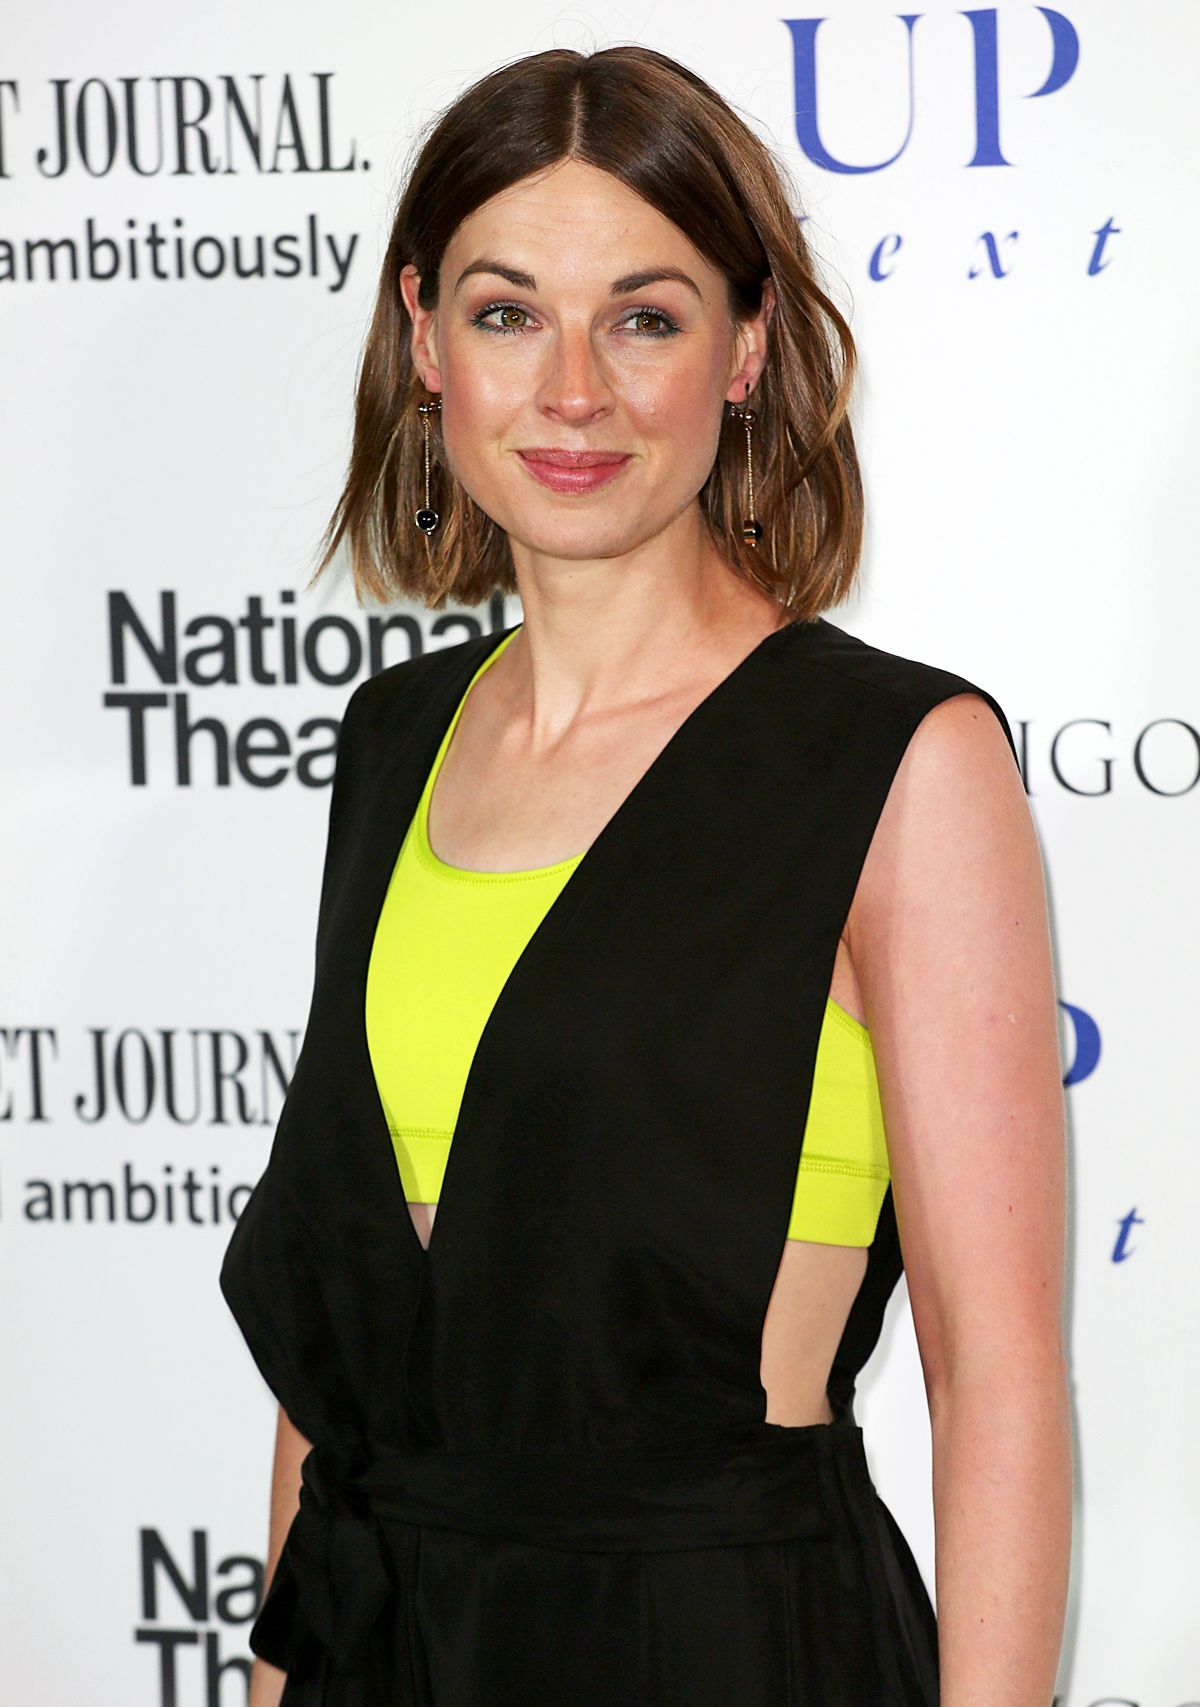 JESSICA RAINE at National Theatre Gala in London 03/07